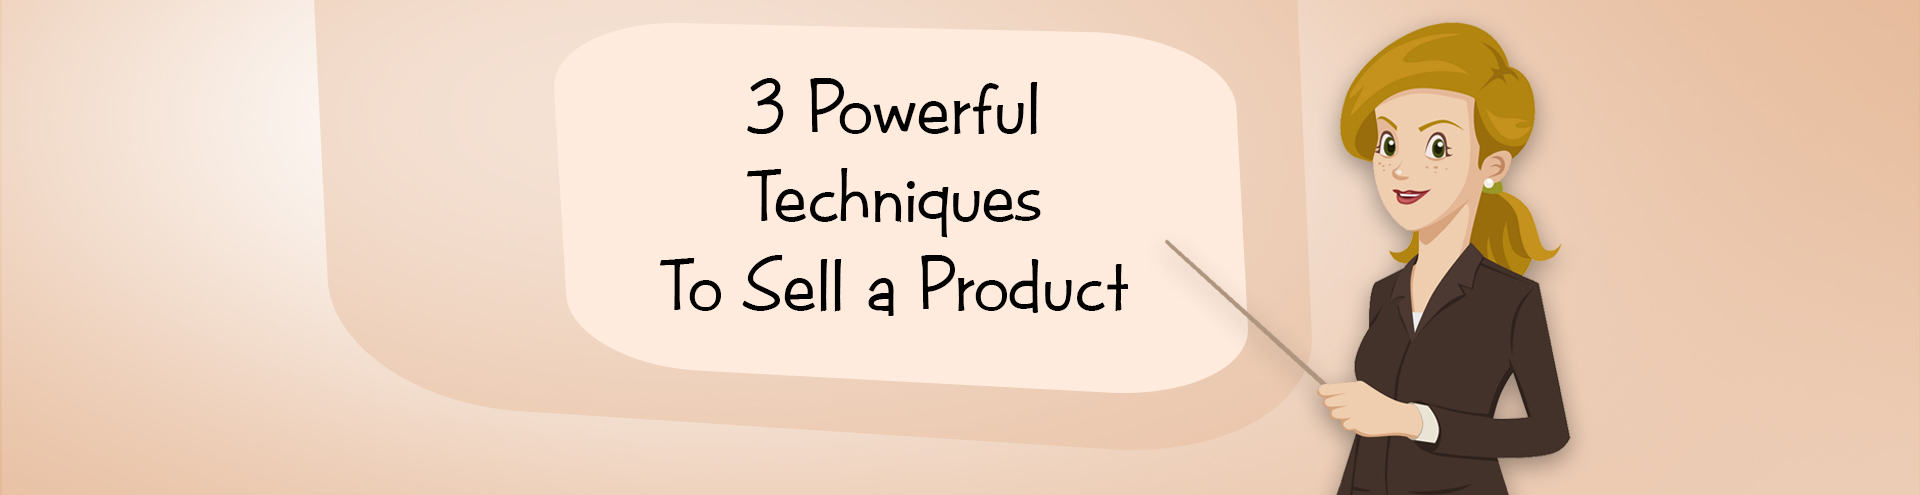 3 Powerful Techniques to Sell a Product